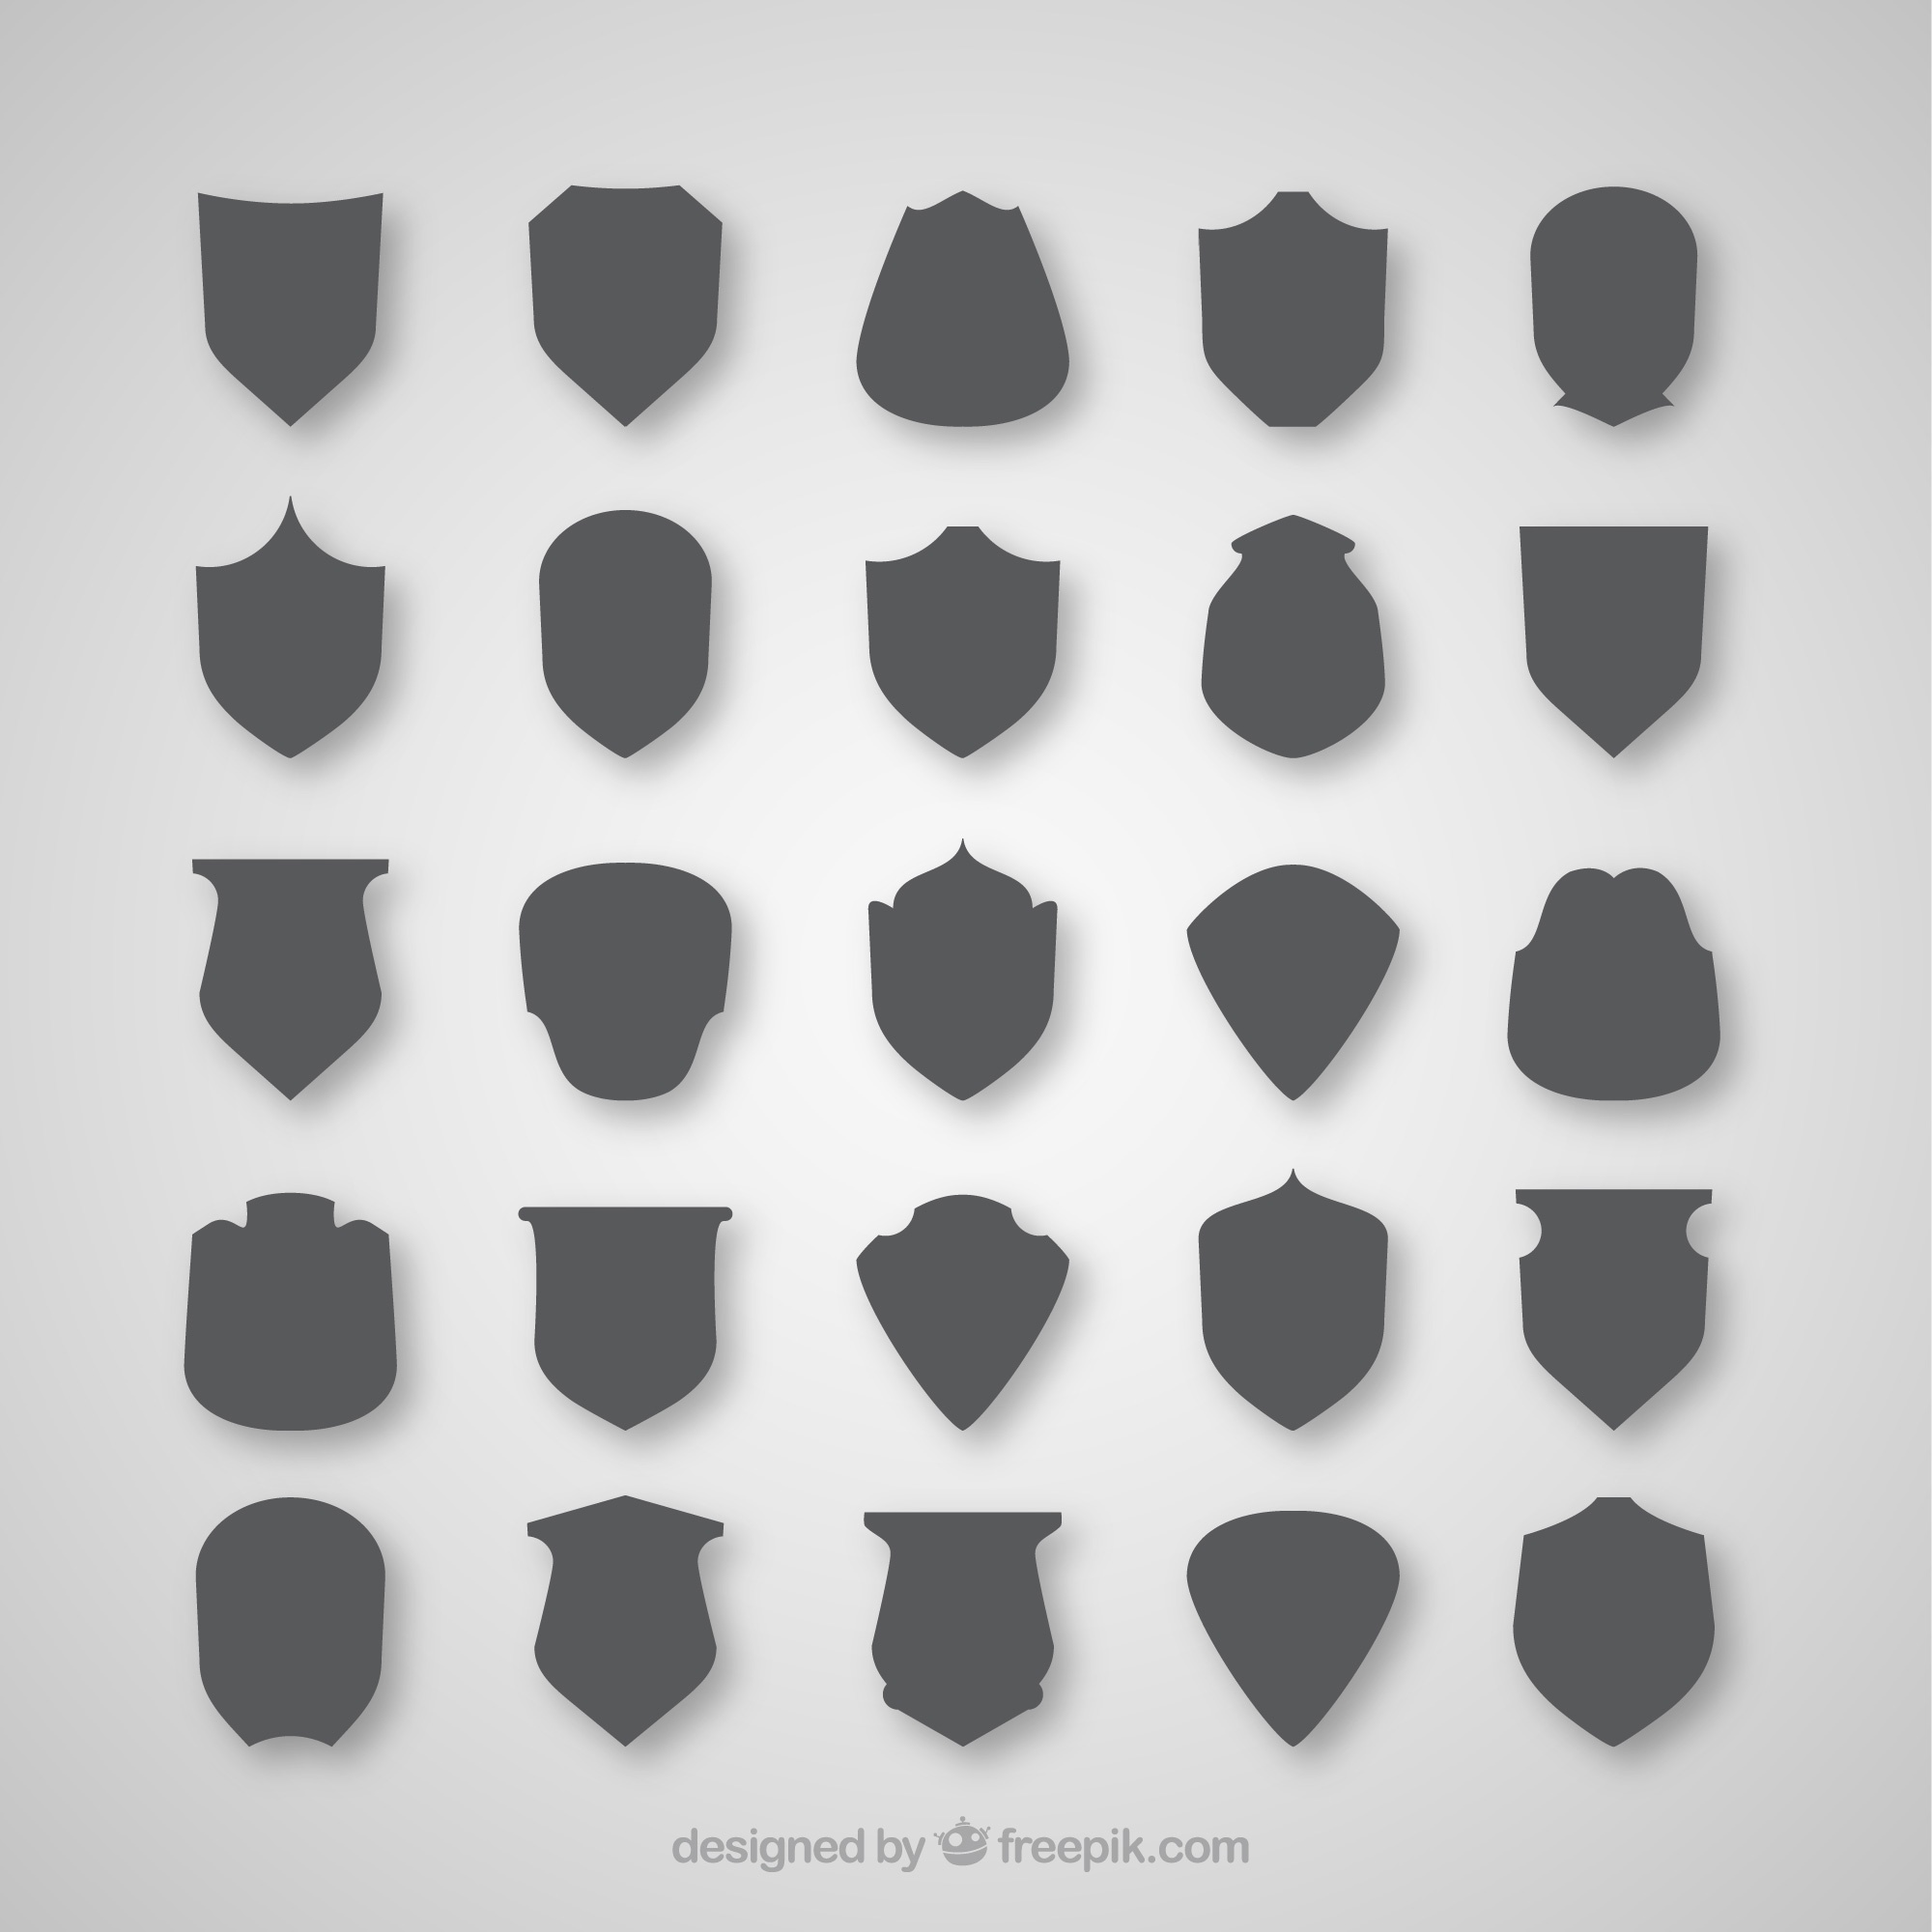 Collection of gray shield silhouettes